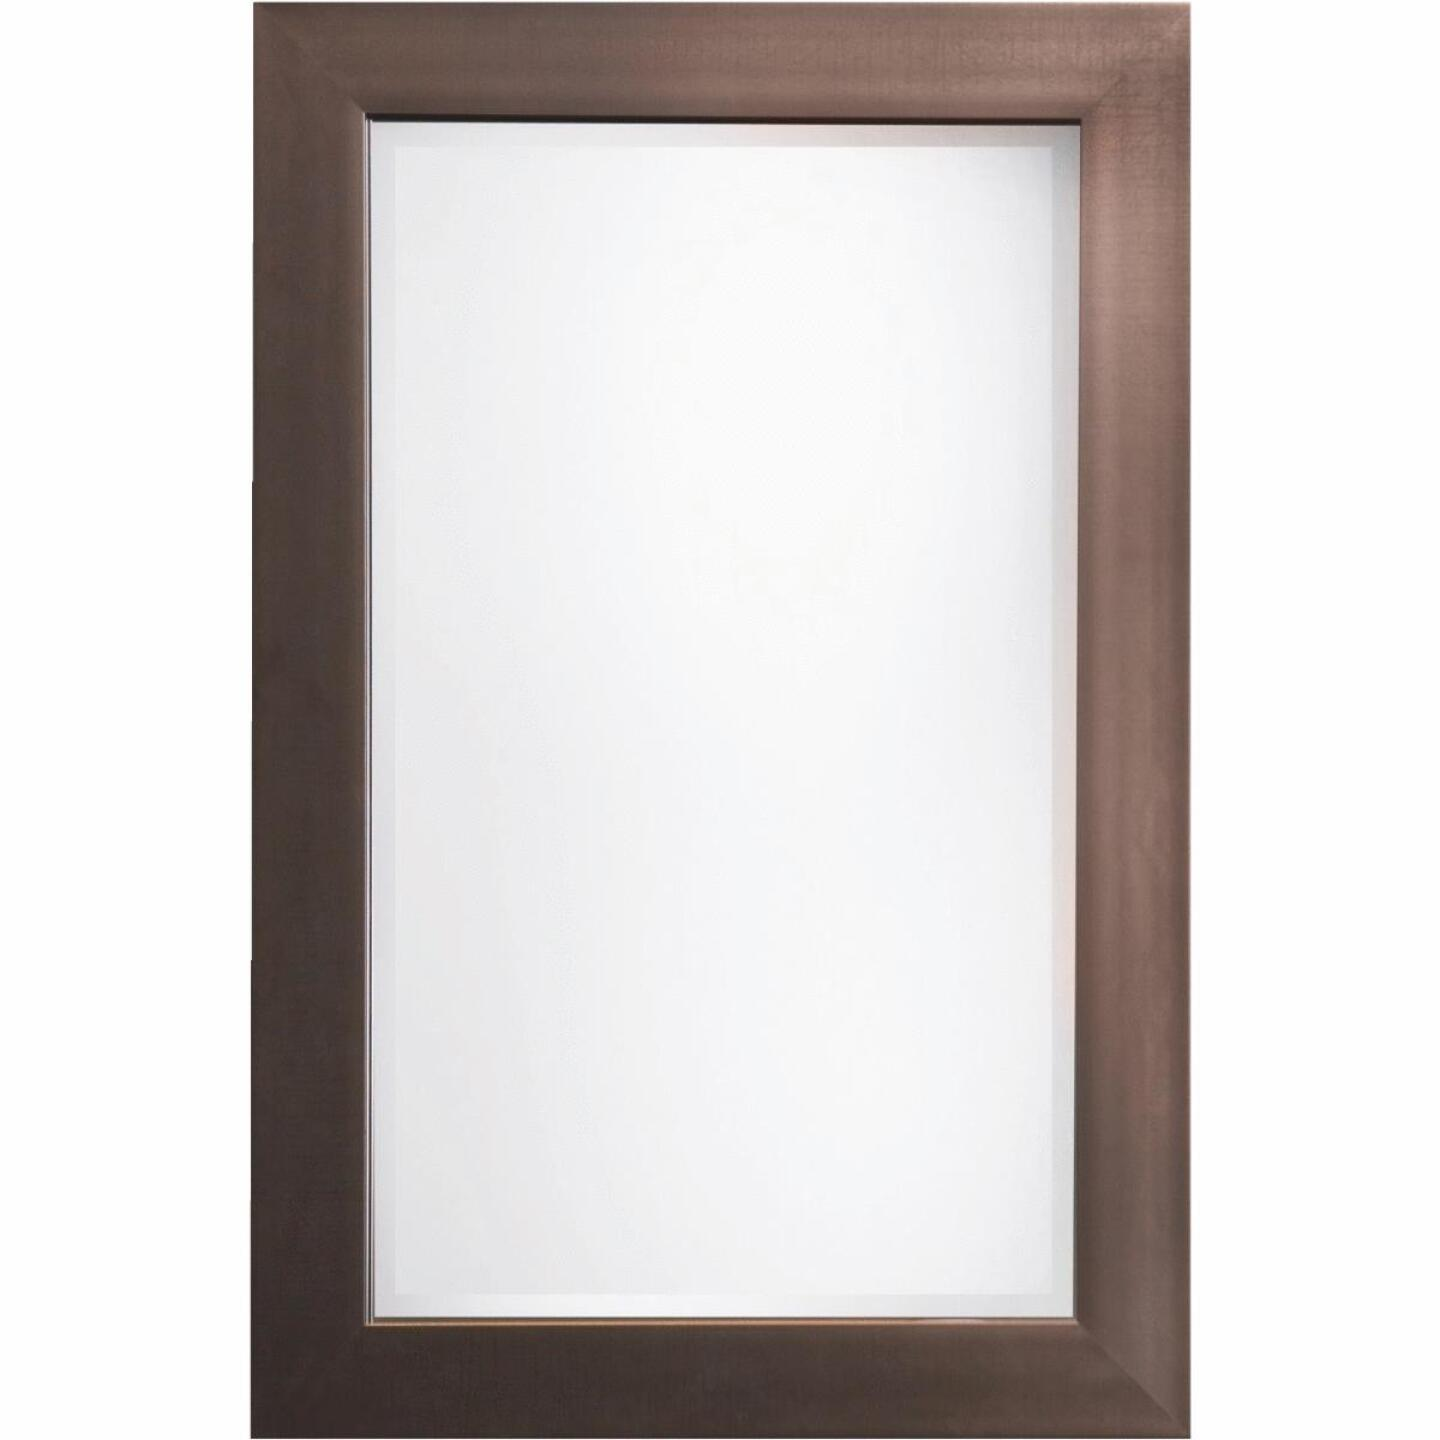 Erias Home Designs Austin 24 In. W. x 36 In. H. Antique Pewter Plastic Framed Wall Mirror Image 1